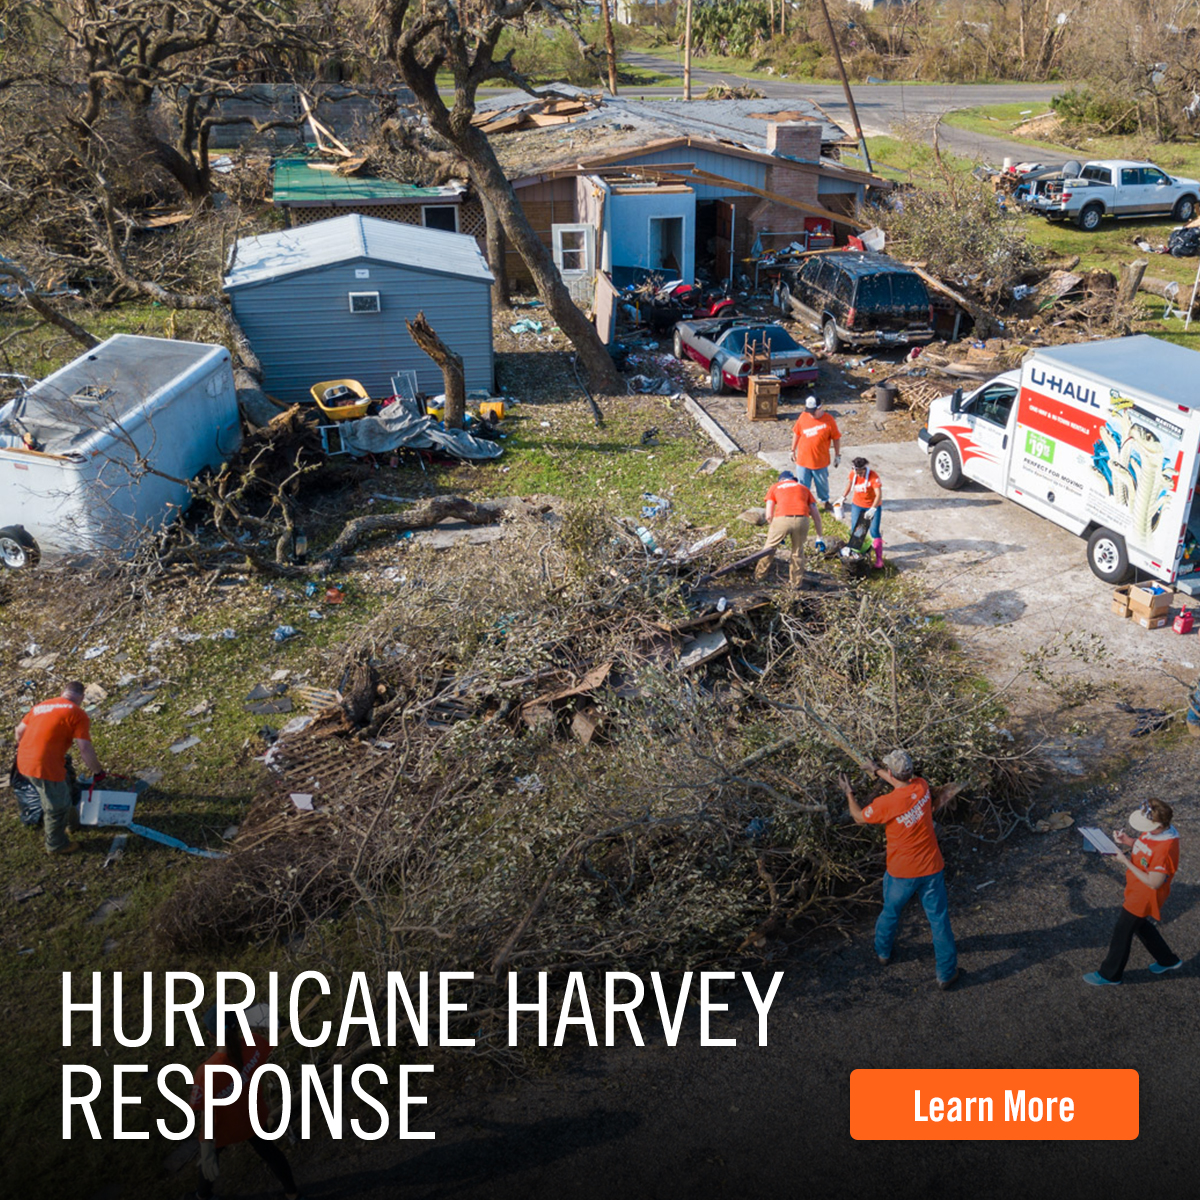 Learn More about our Hurricane Harvey Response